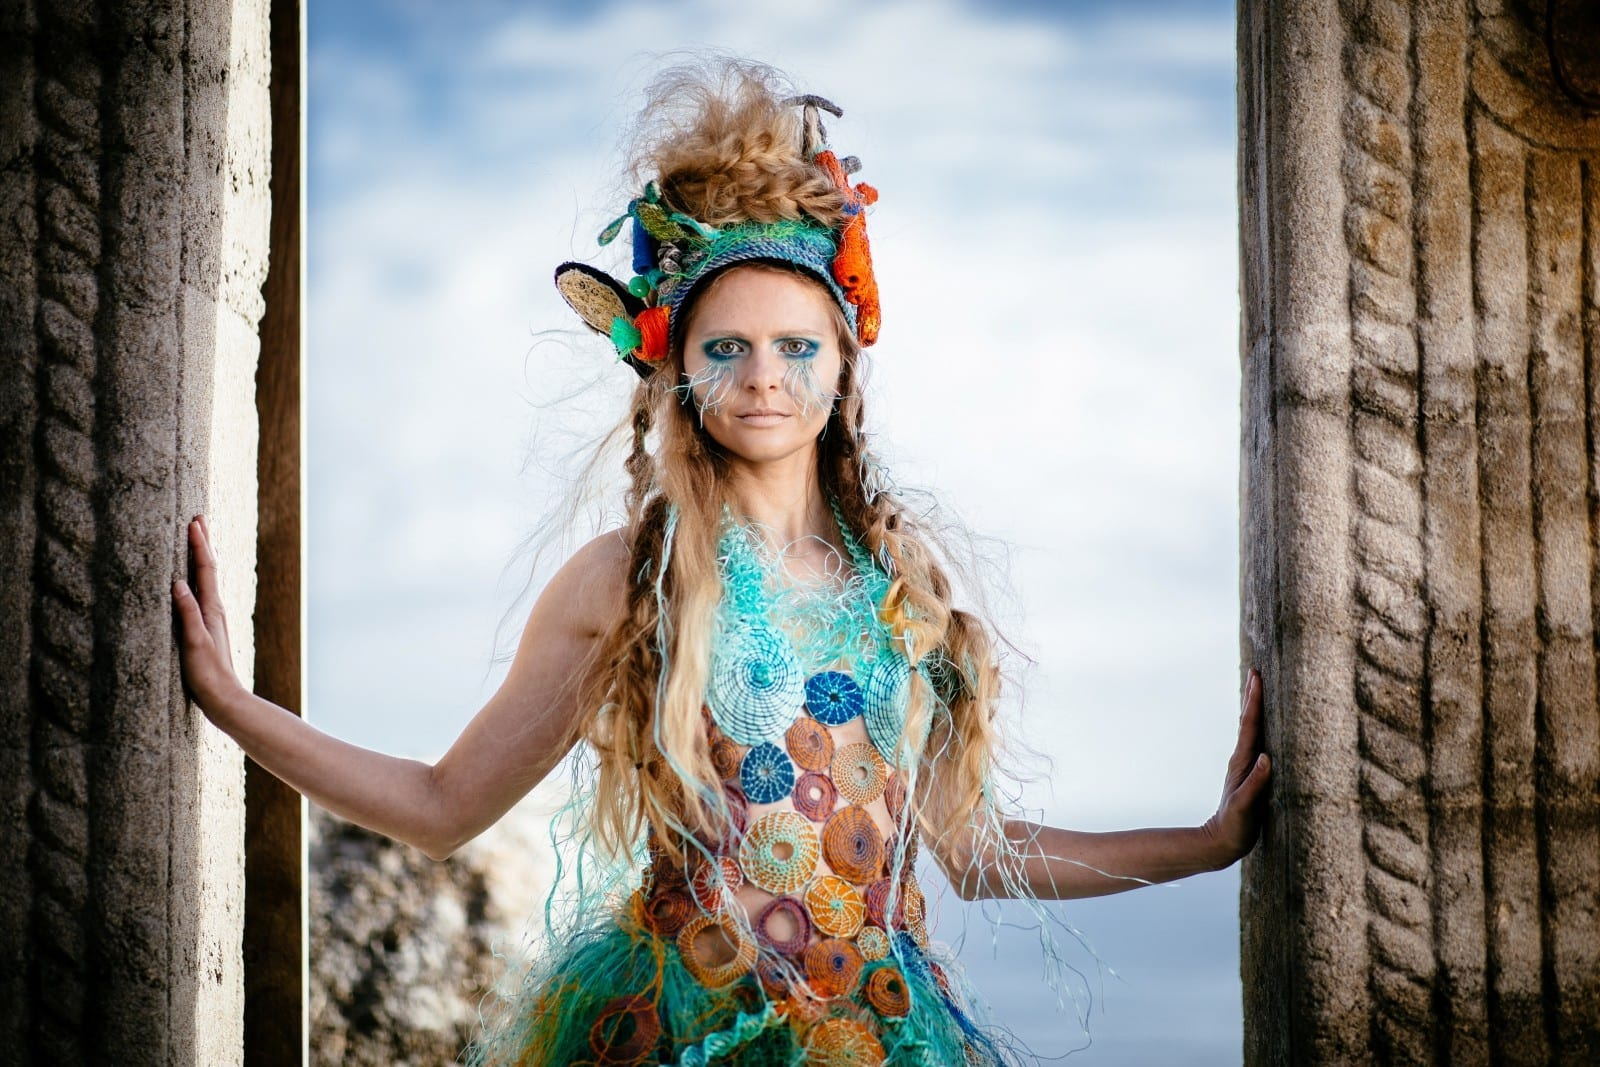 One Women's Trash! – Clothing Designer Makes Dress Out Of Ghost Netting To Raise Awareness